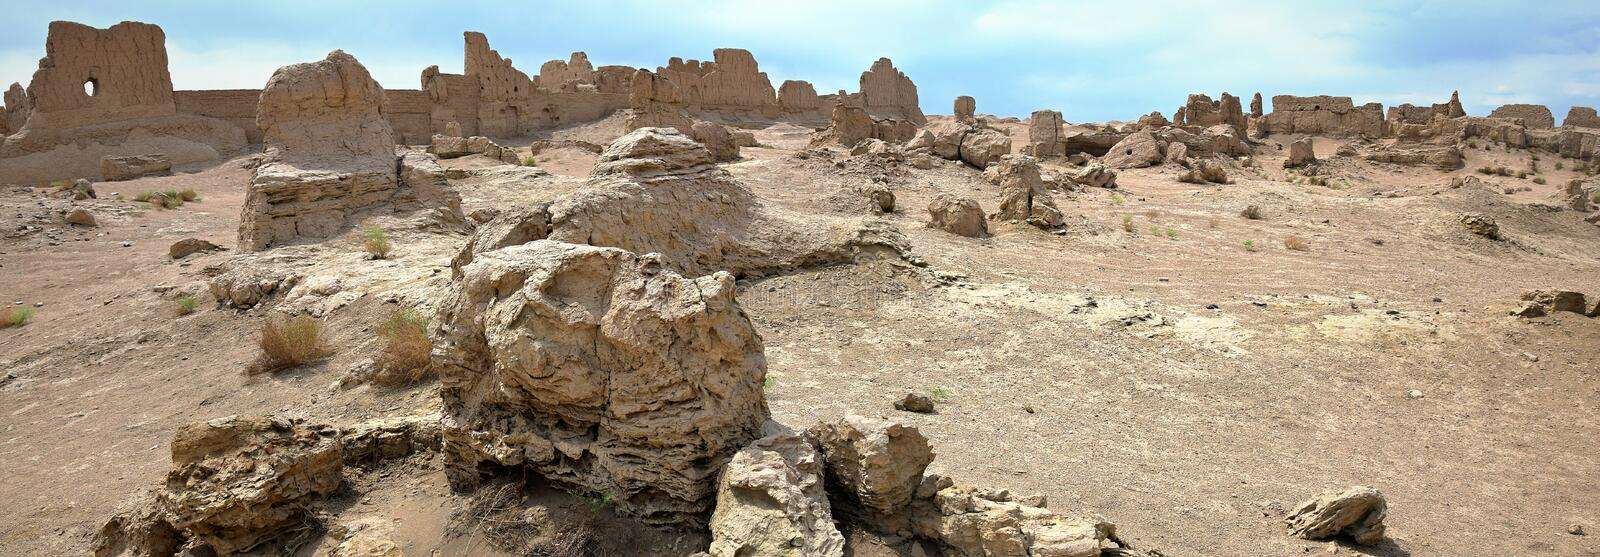 Jiaohe Ancient Ruins in Turpan in Xinjiang Uighur Autonomous Region of China. Jiaohe Ancient Ruins in Turpan range is a natural fortress located atop a steep stock images